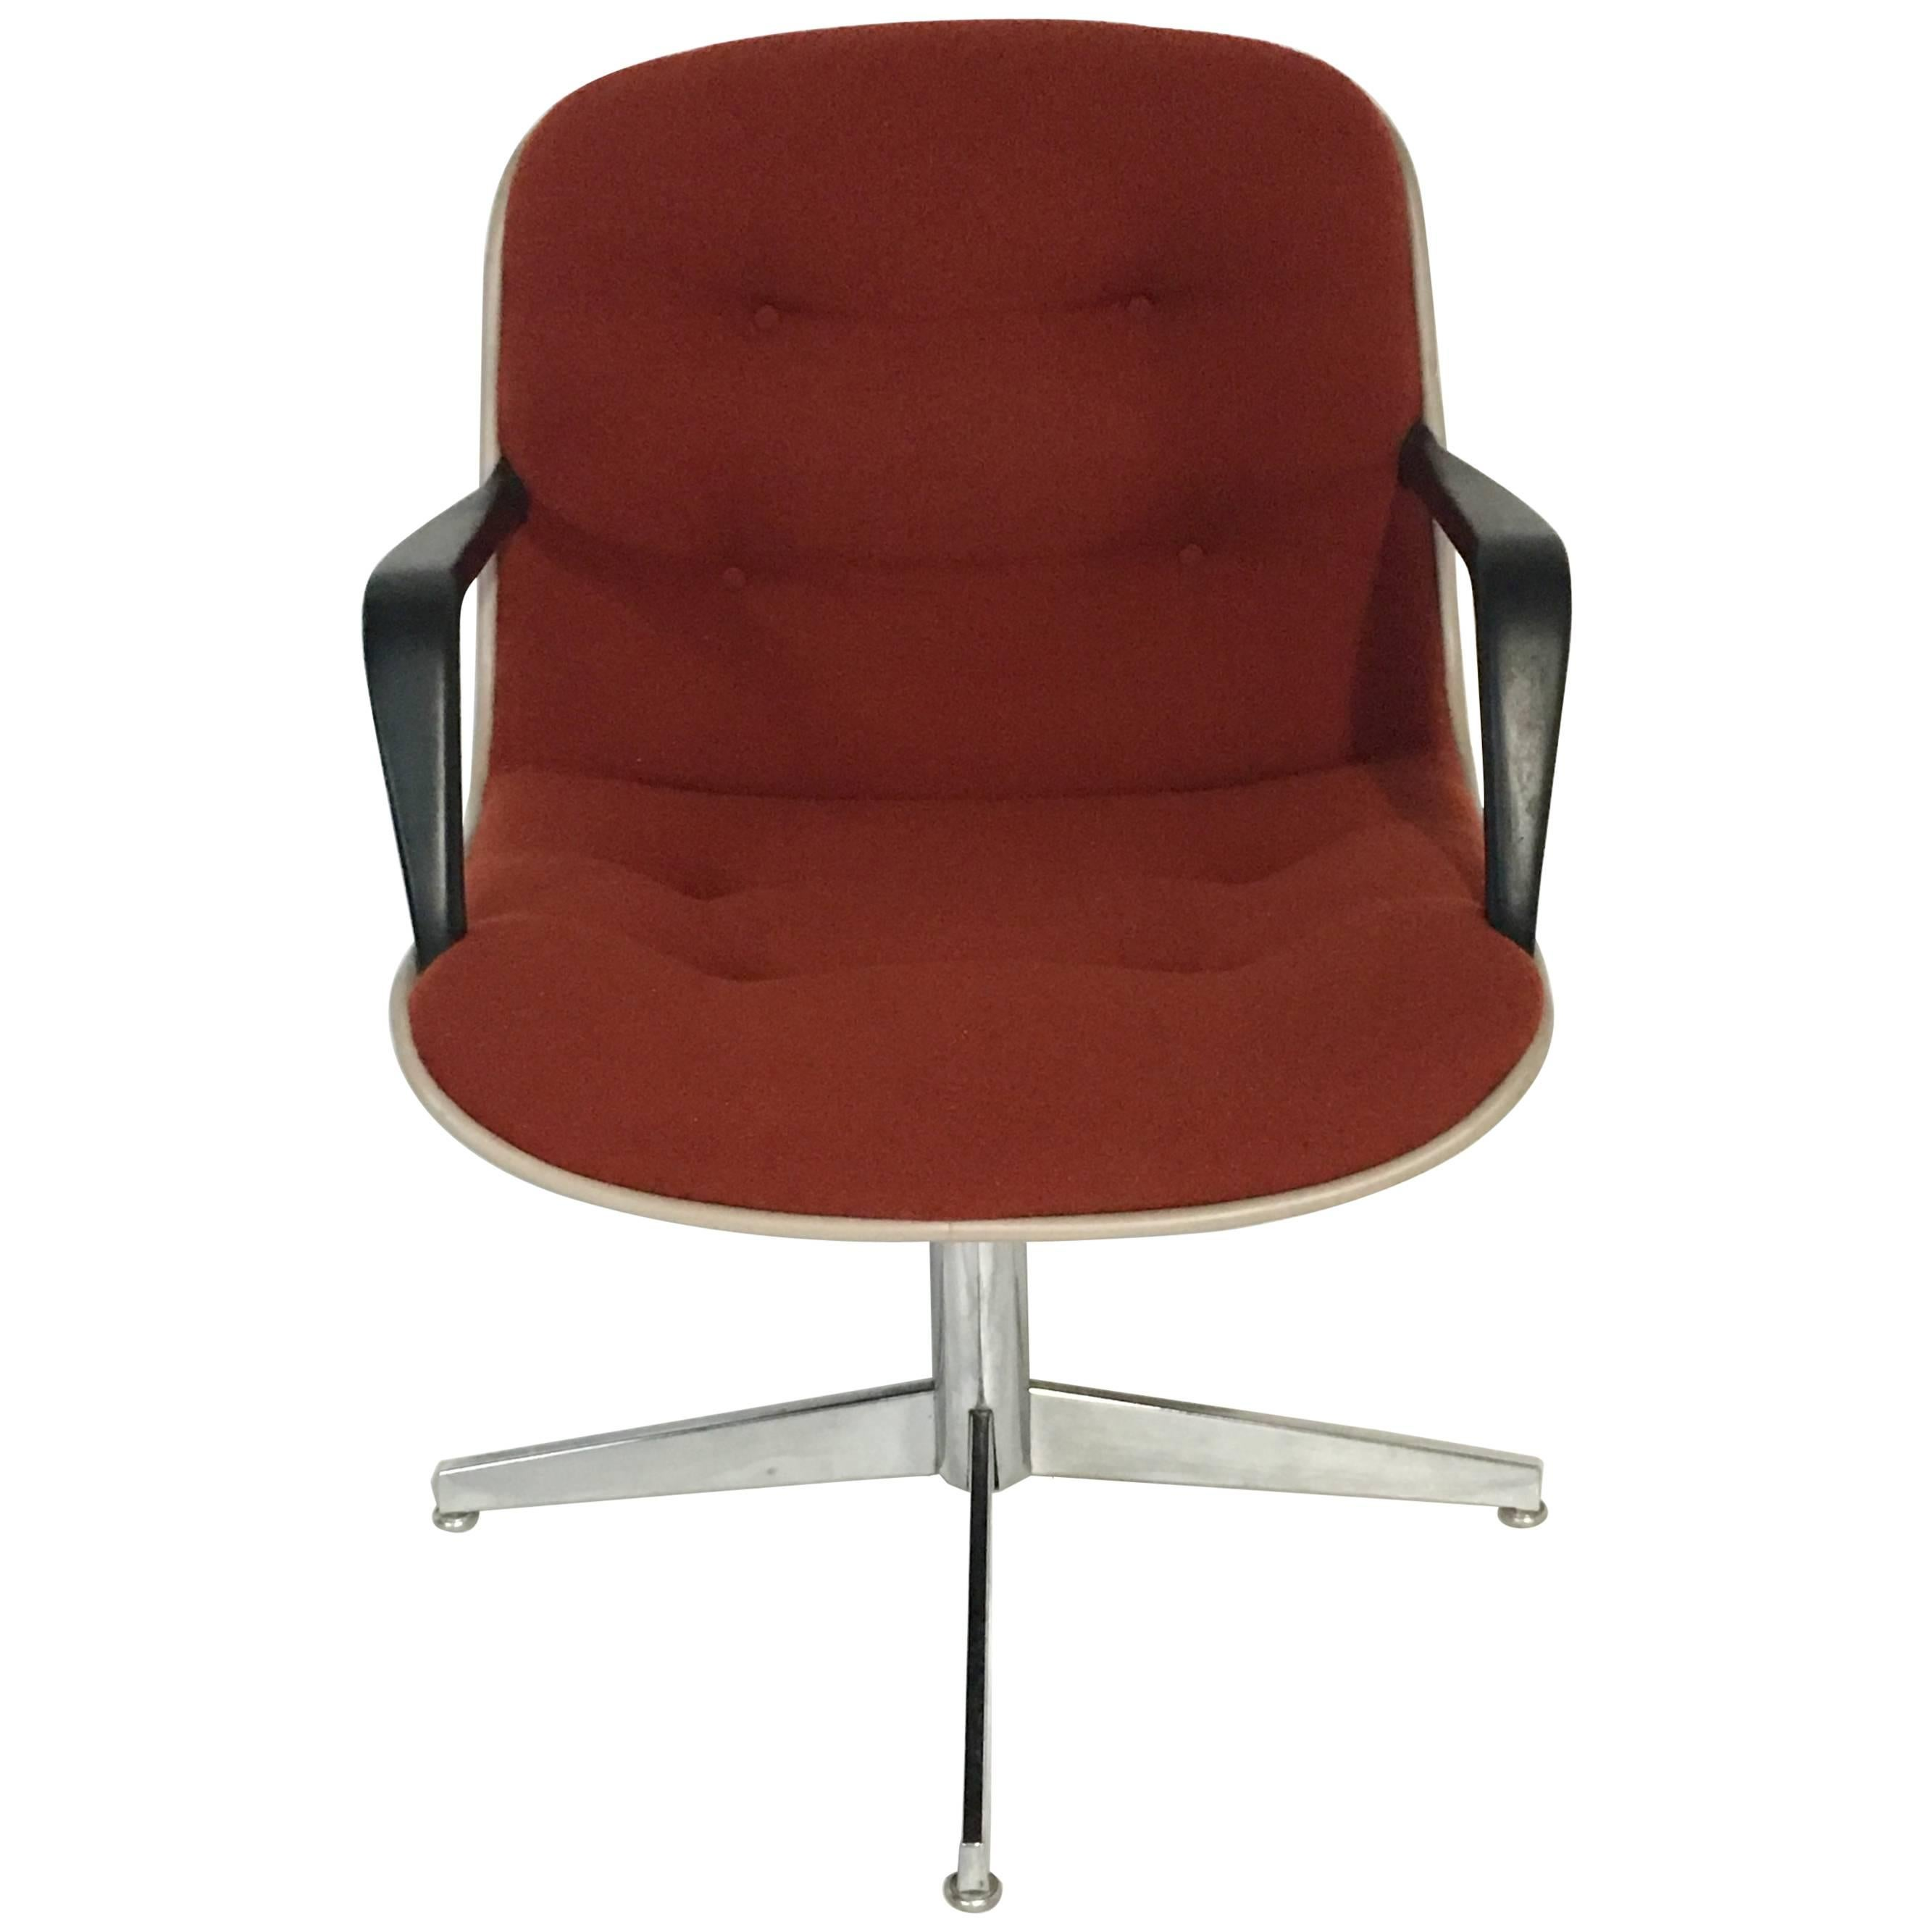 1980'S Upholstered Swivel Chrome Armchair By, Steelcase